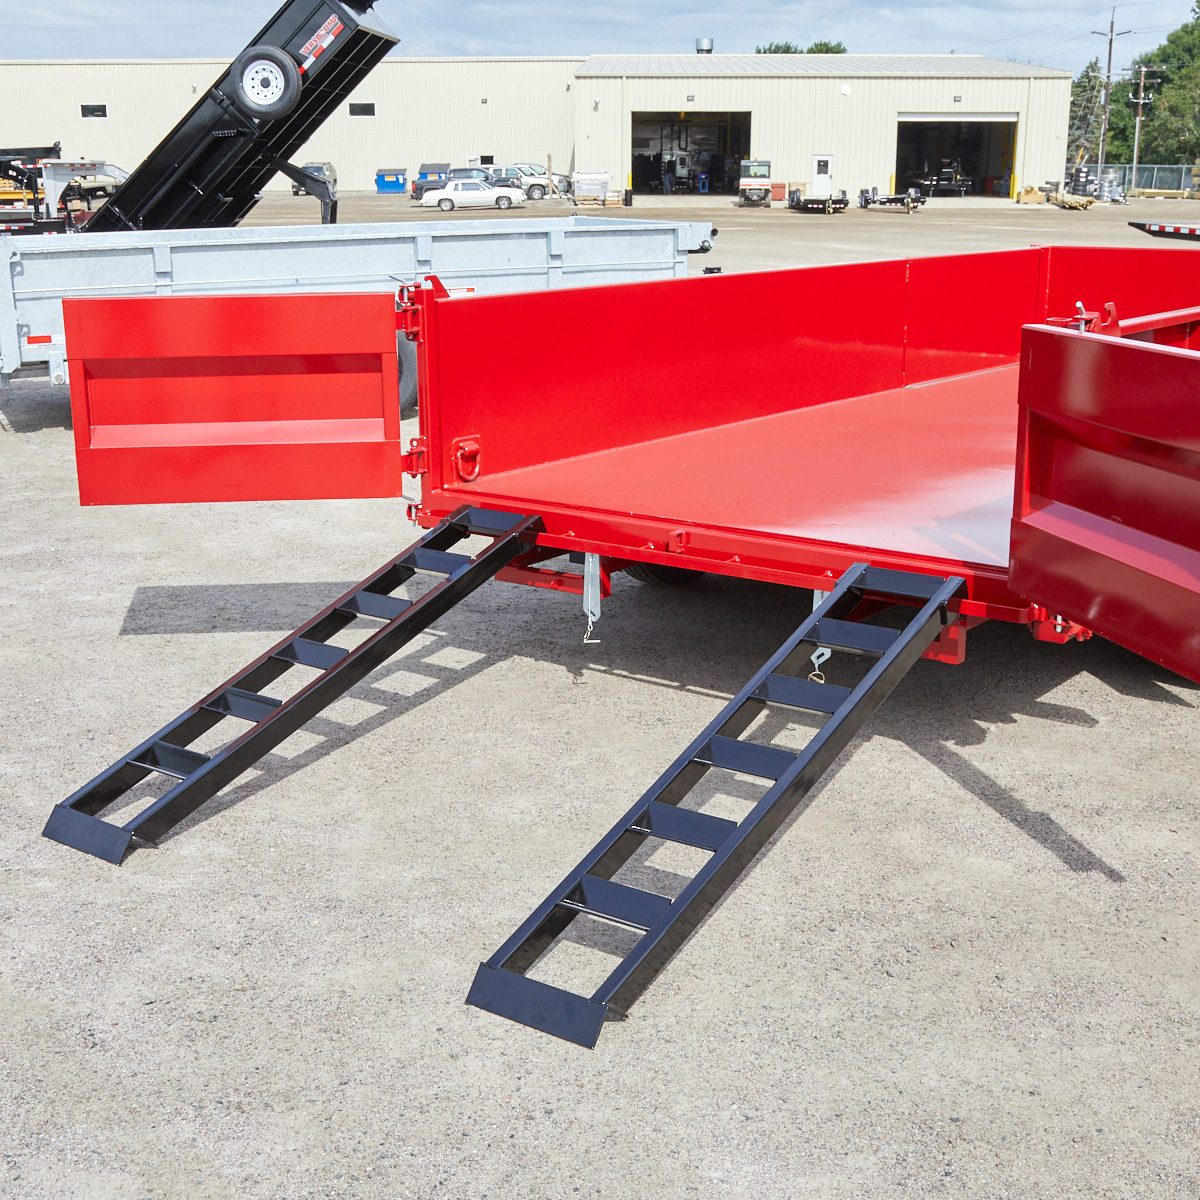 Ramps up into the trailer bed | Construction Pro Tips